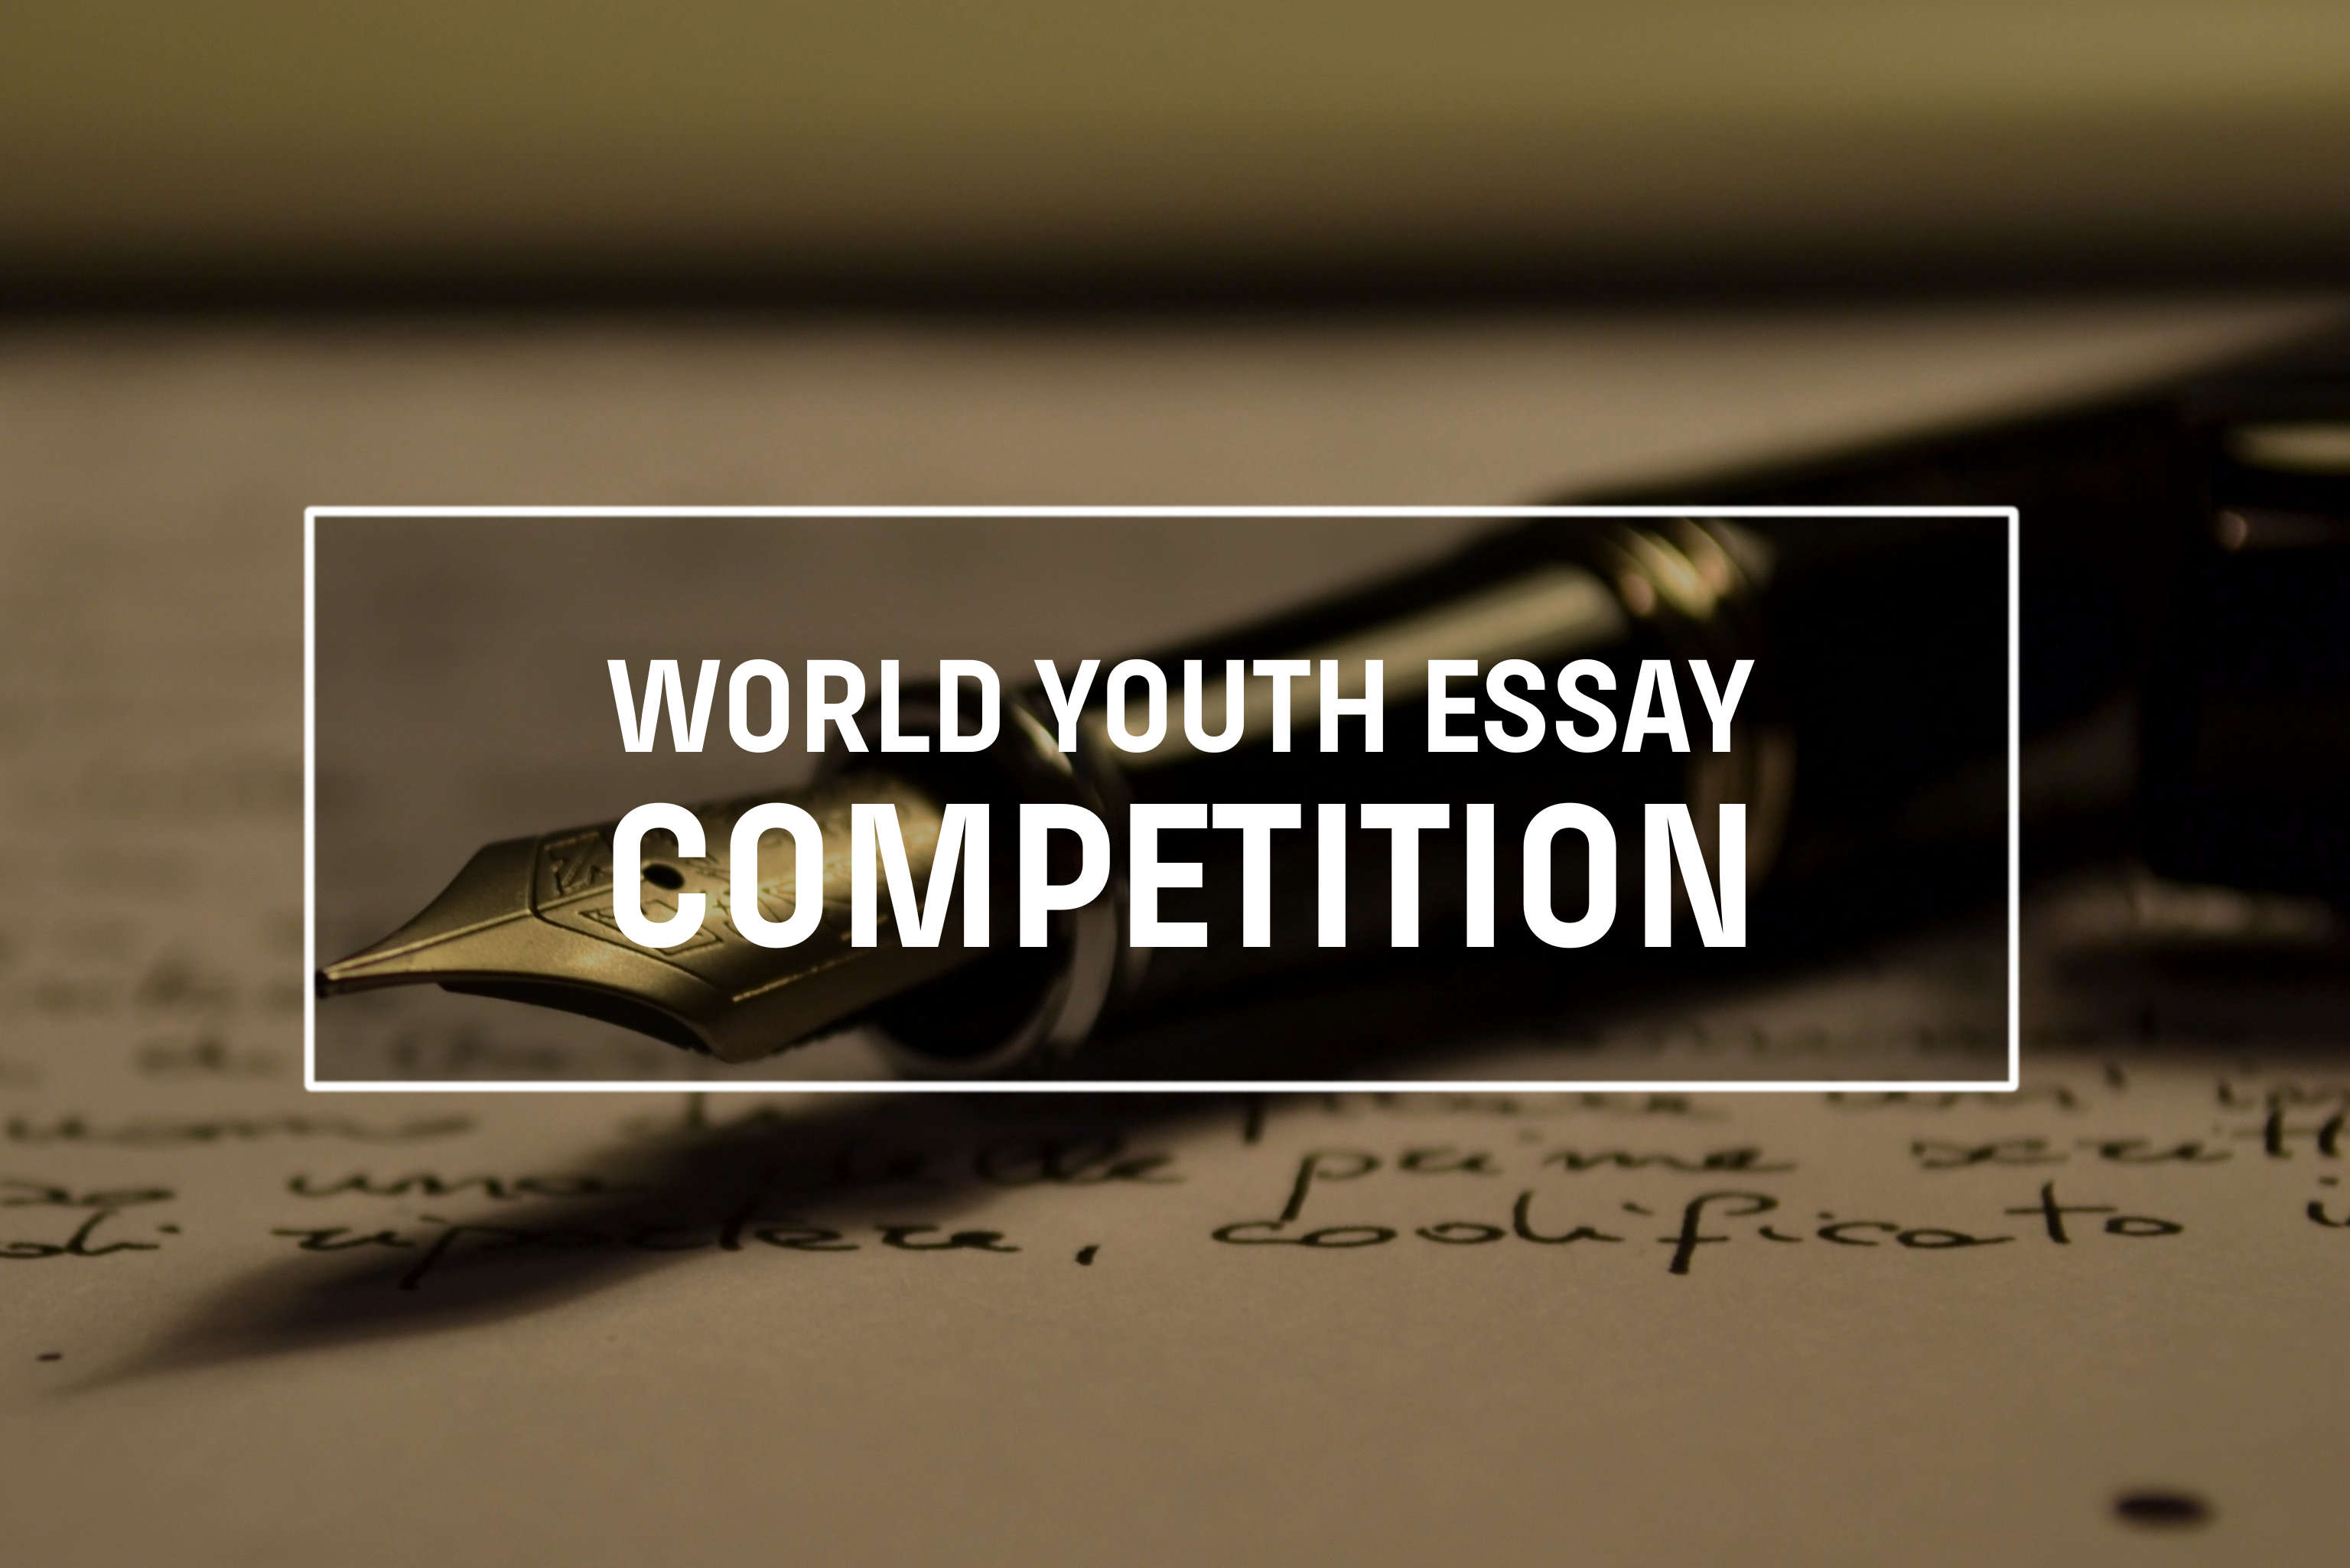 Youth essays